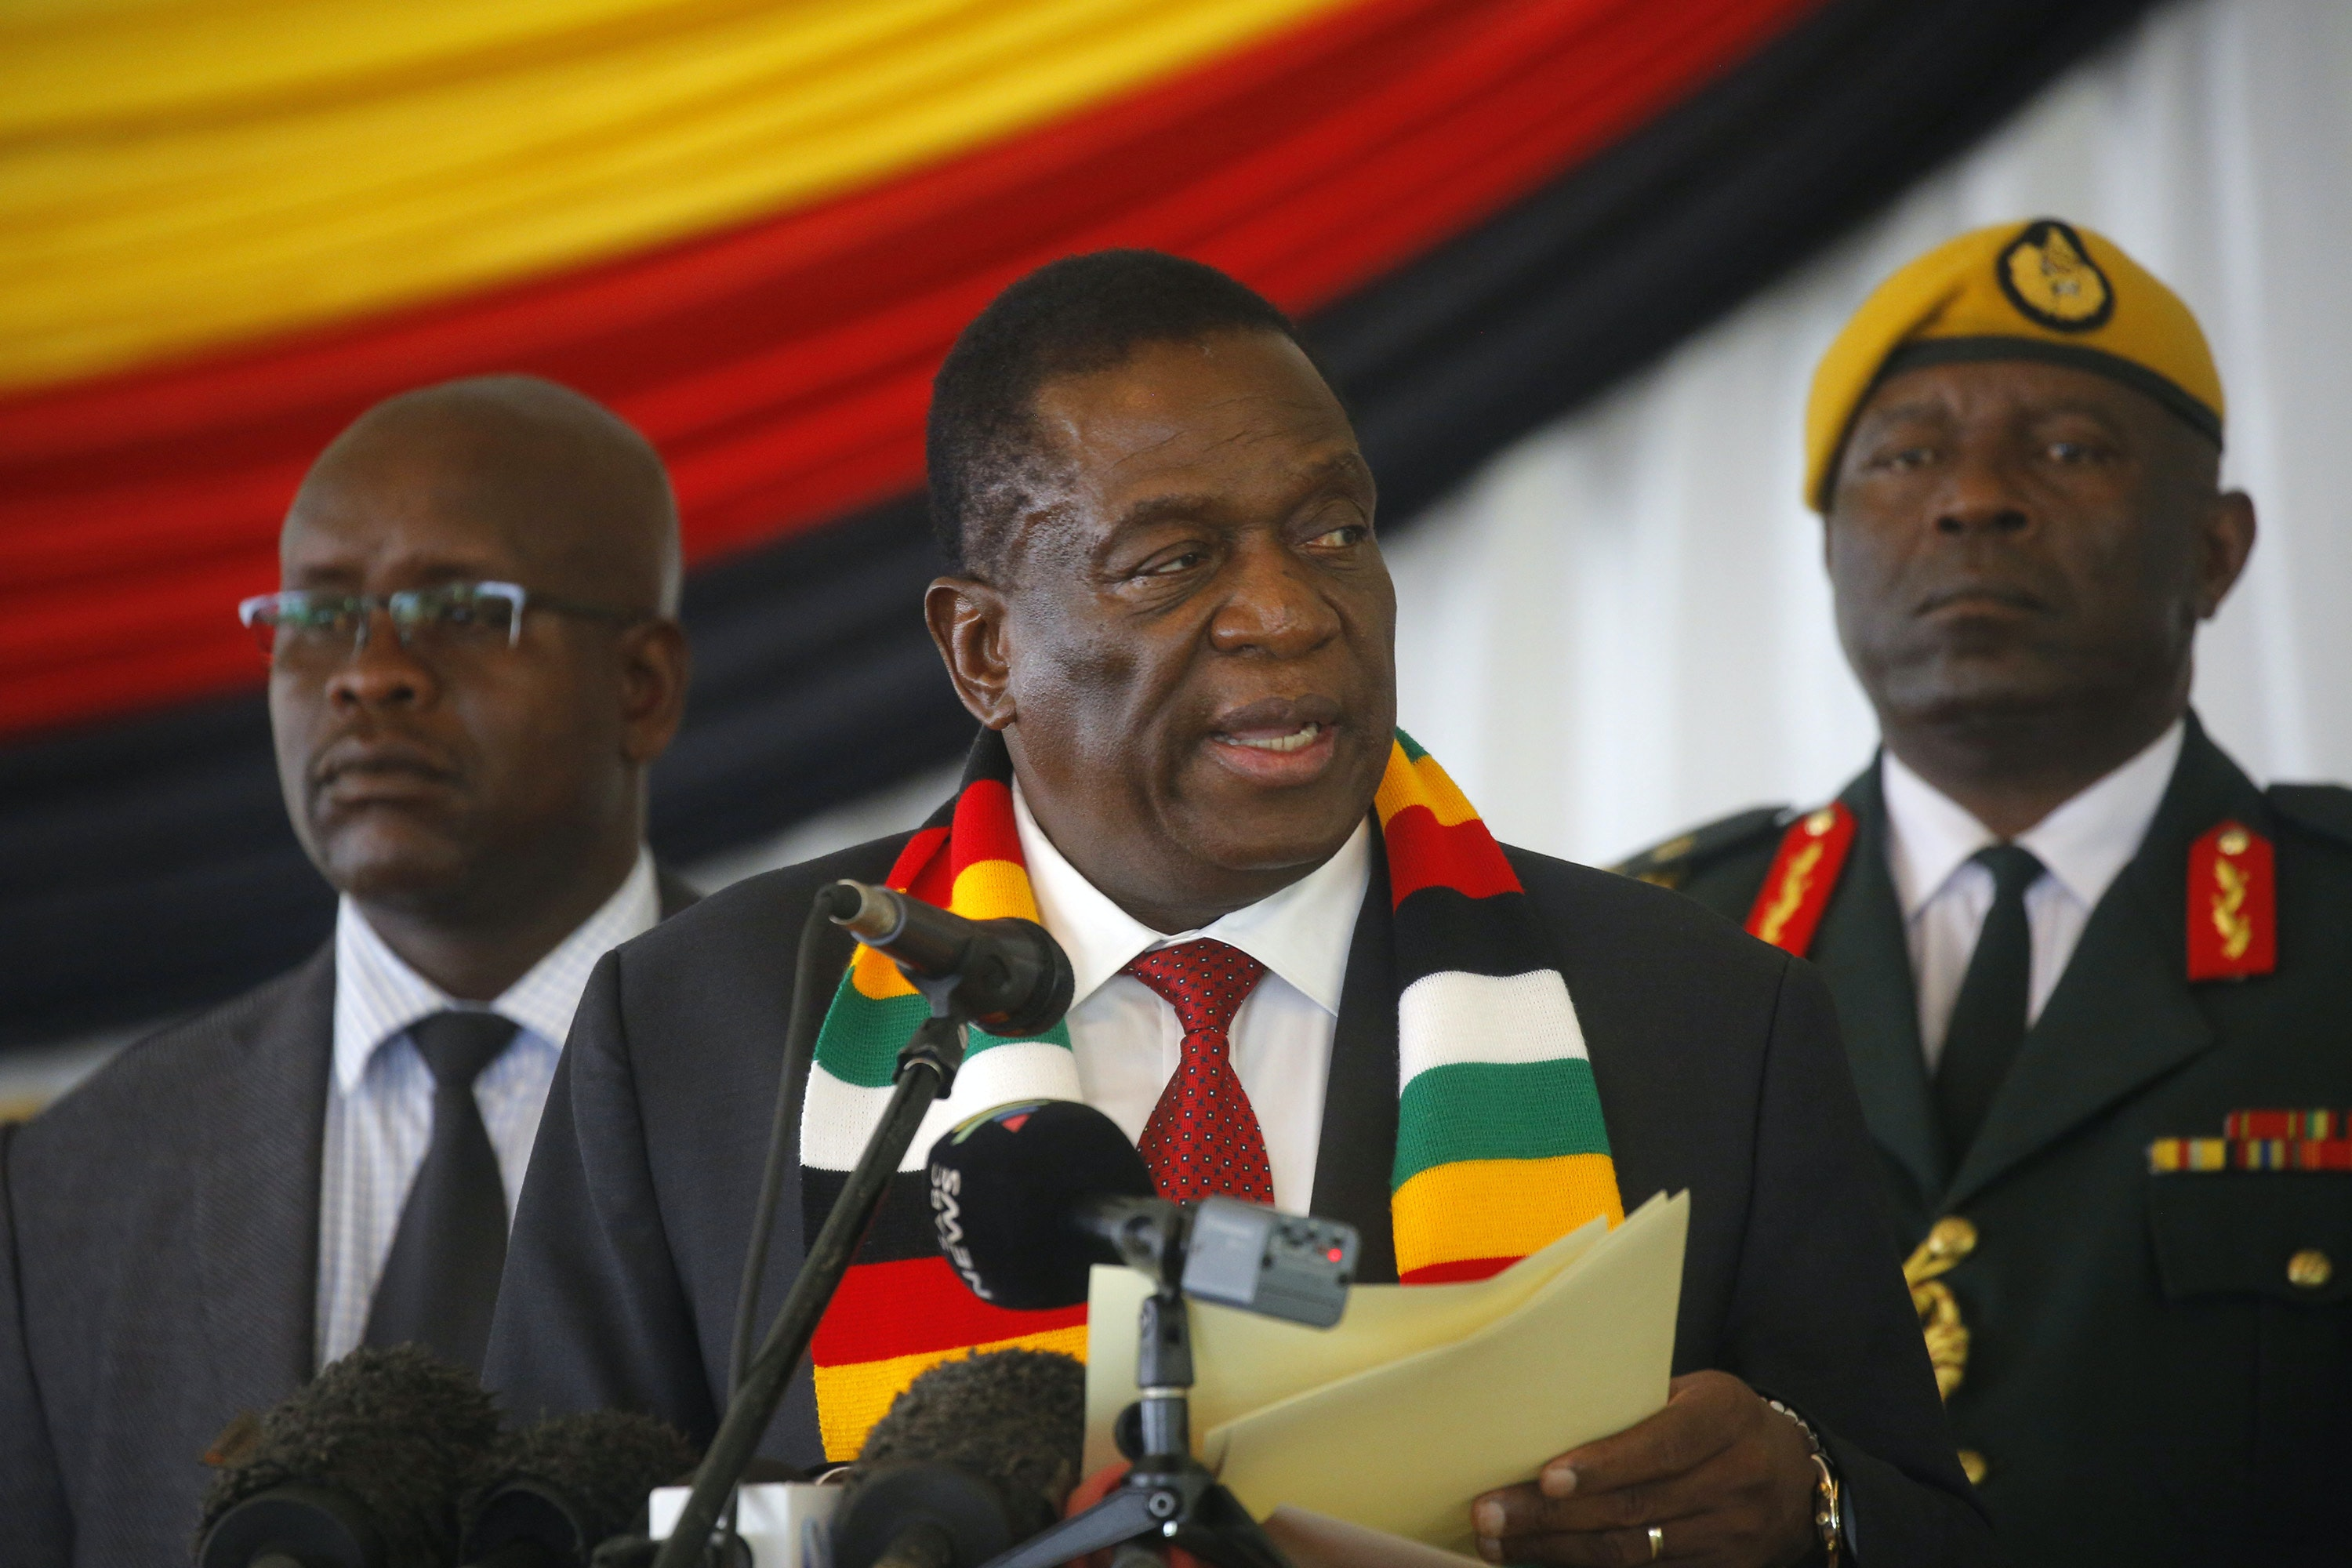 Responses to Zimbabwe highlight gulf between the region and the west